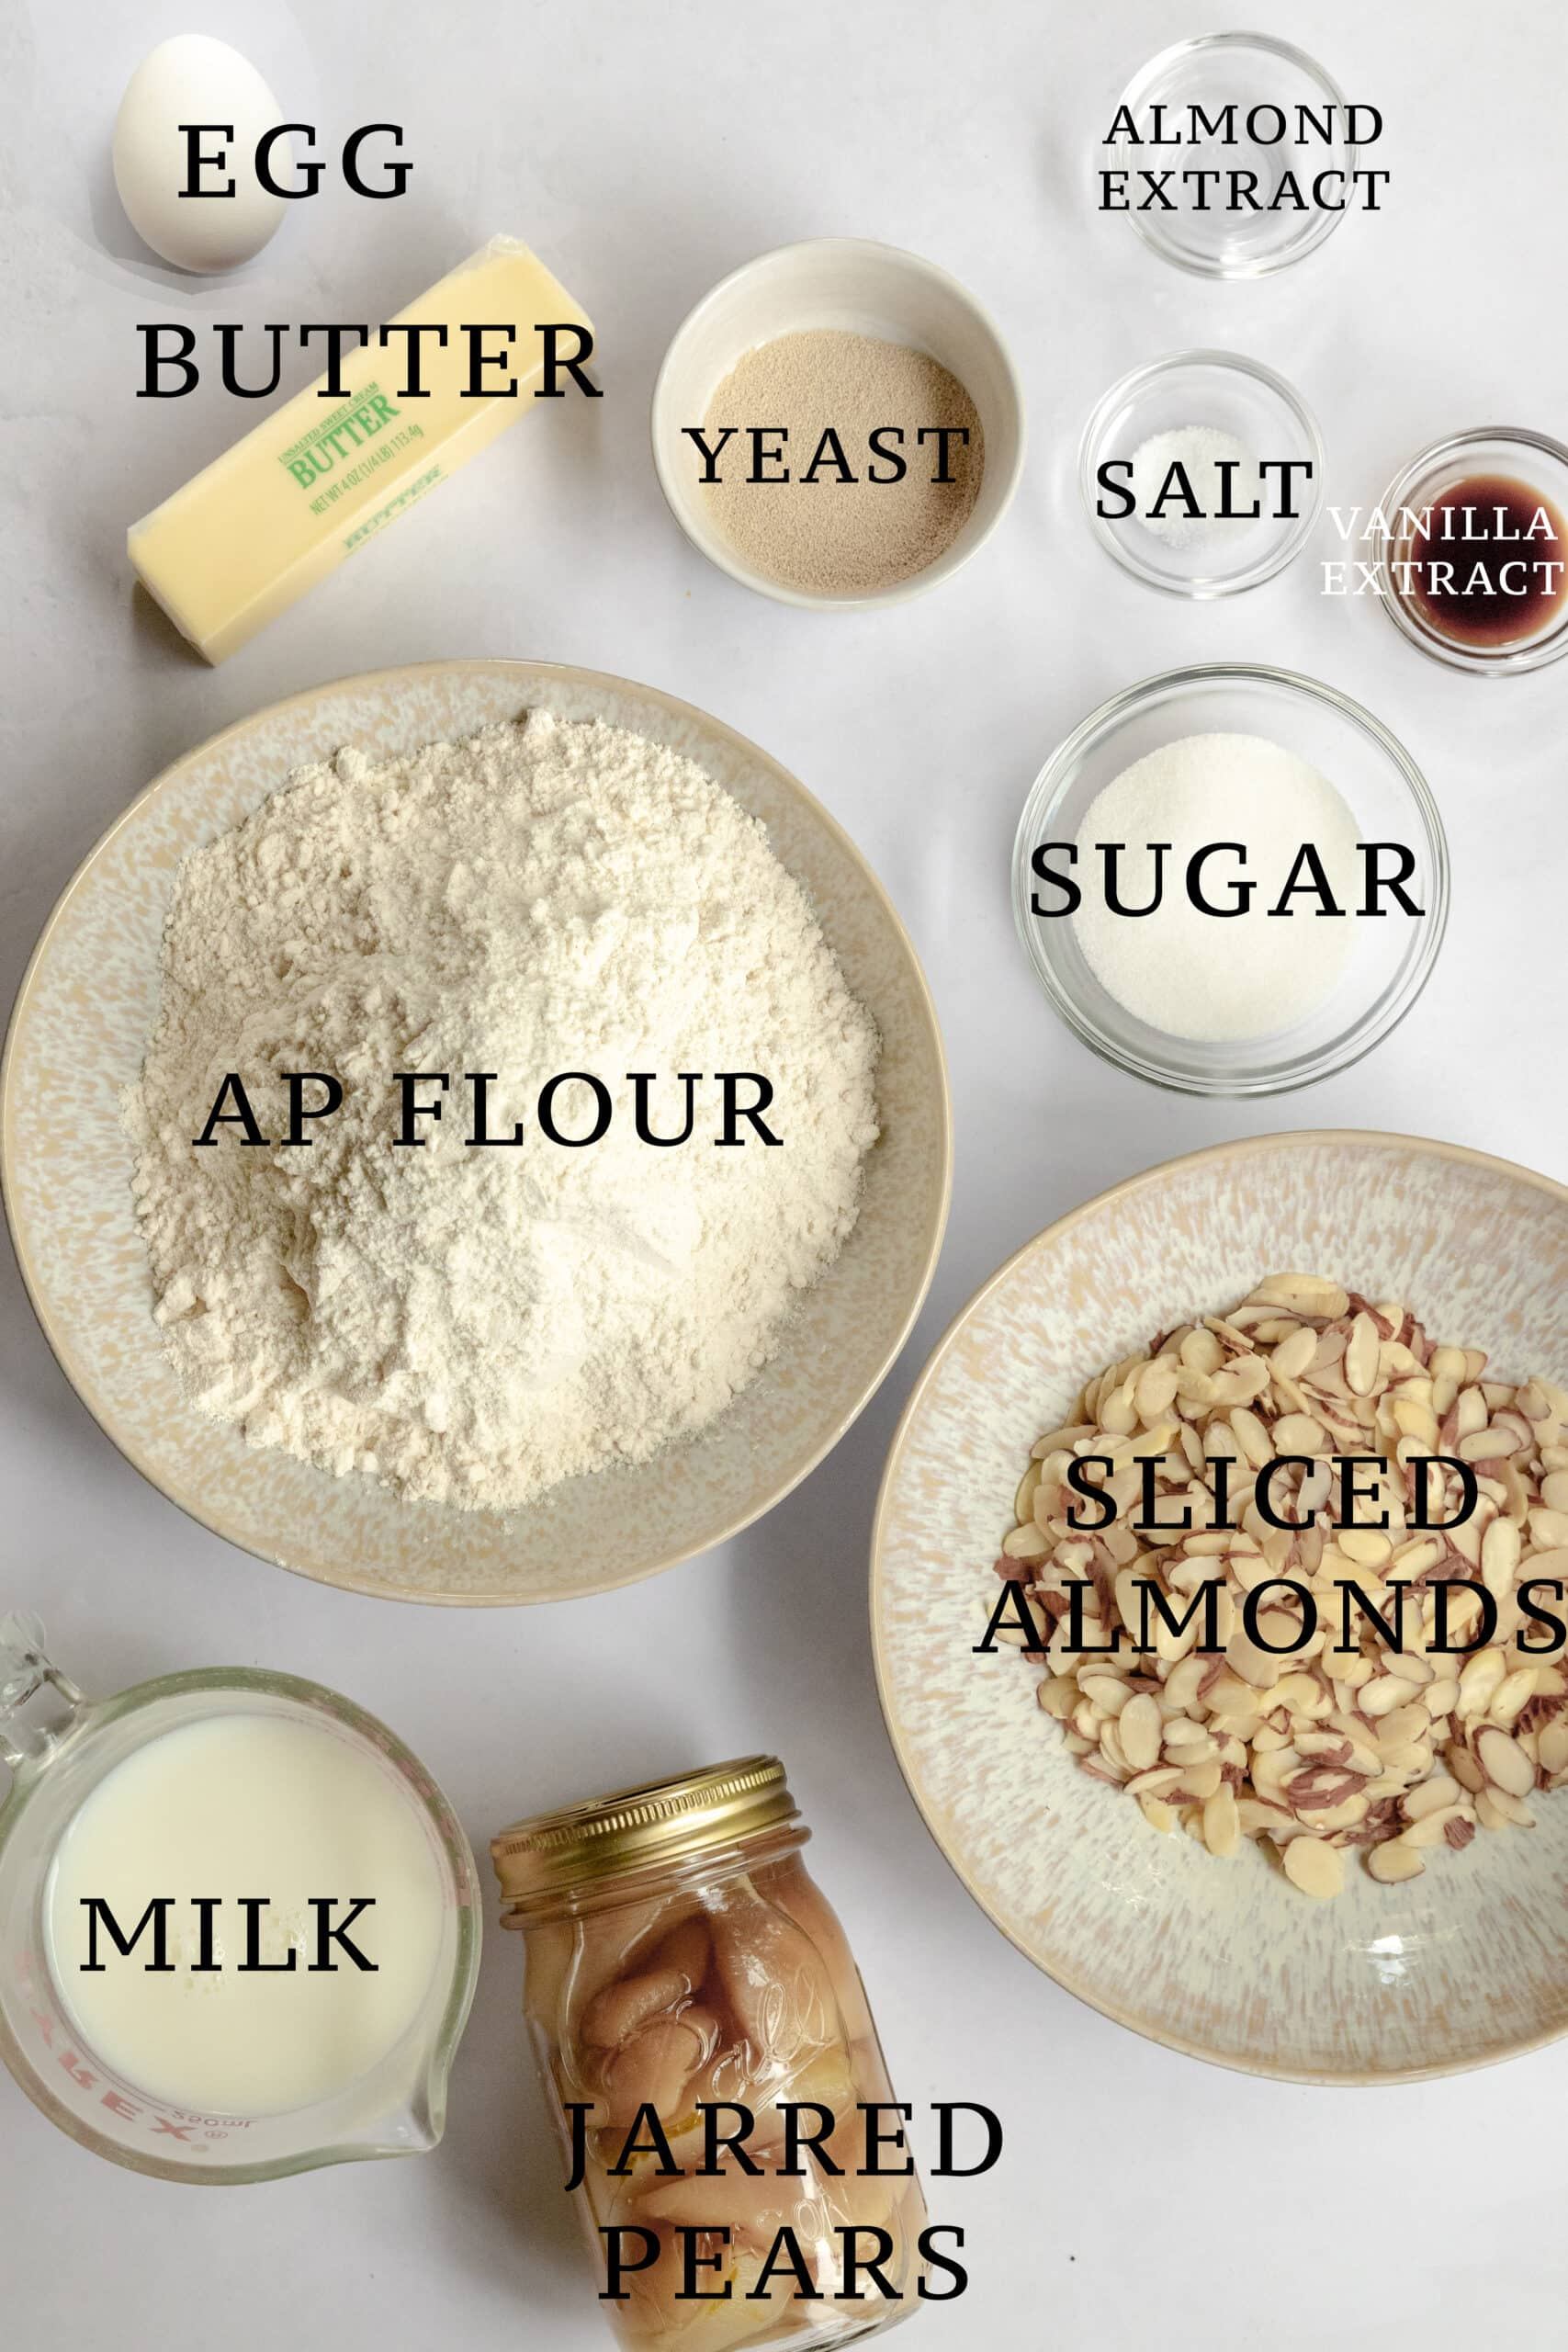 Image of the ingredients needed for Almond Pear Butterkuchen